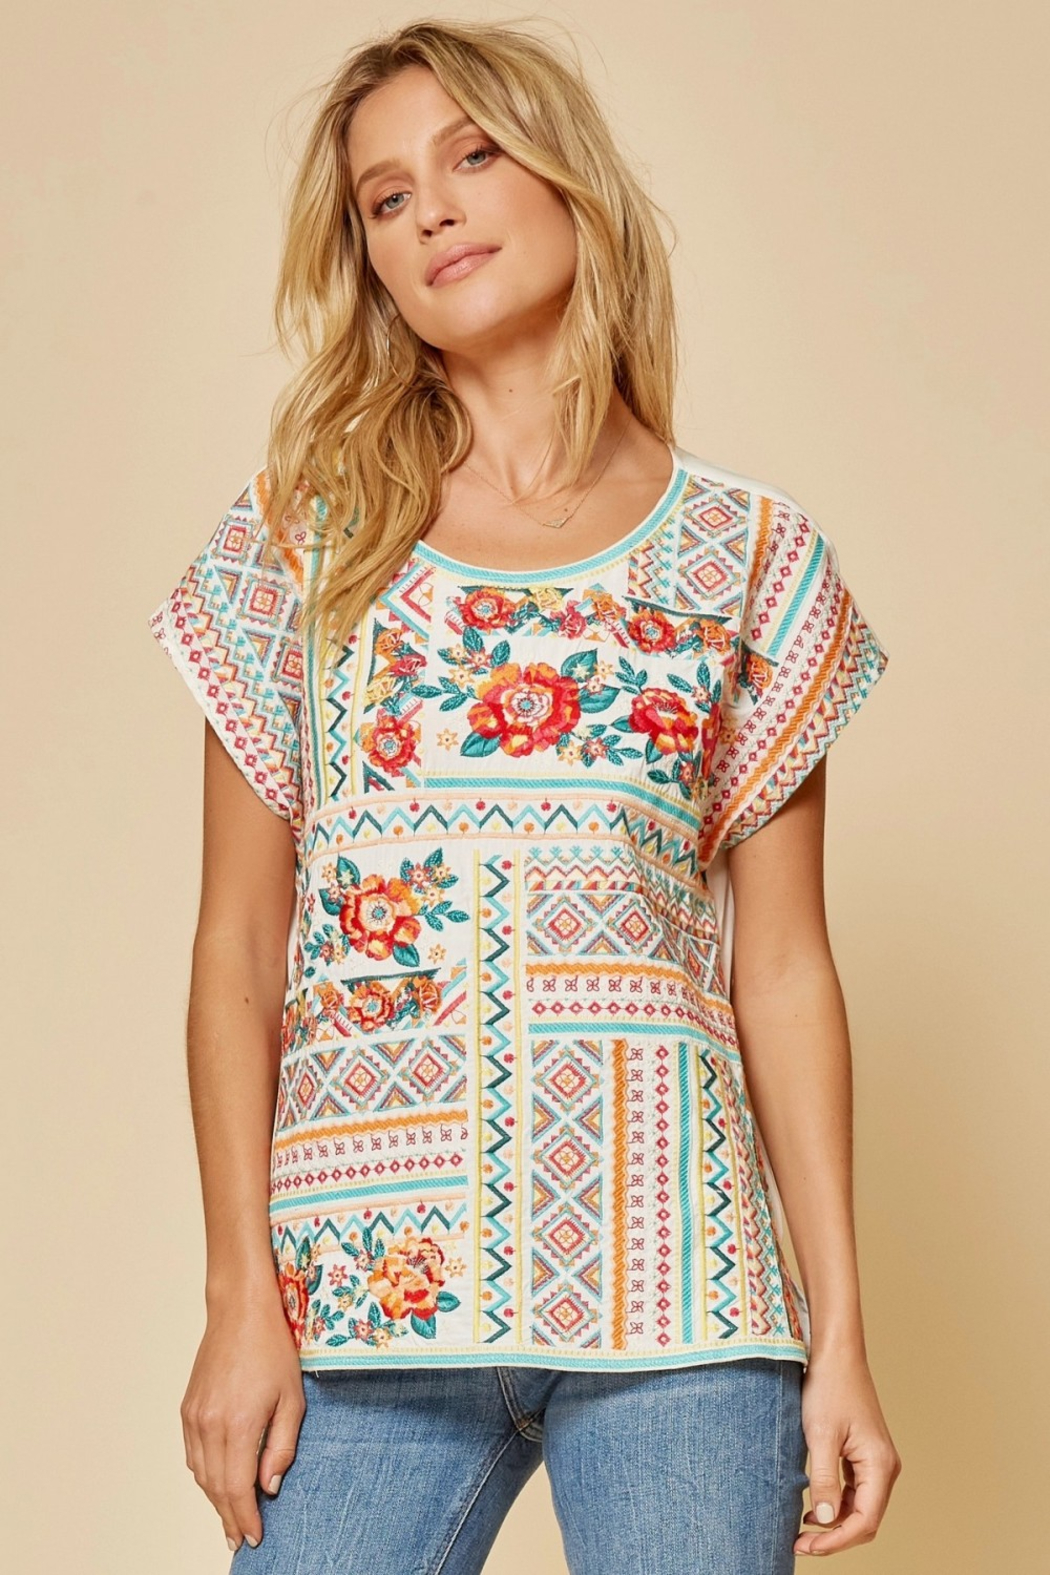 Savanna Jane Classic Beauty Embroidered Top - Side Cropped Image